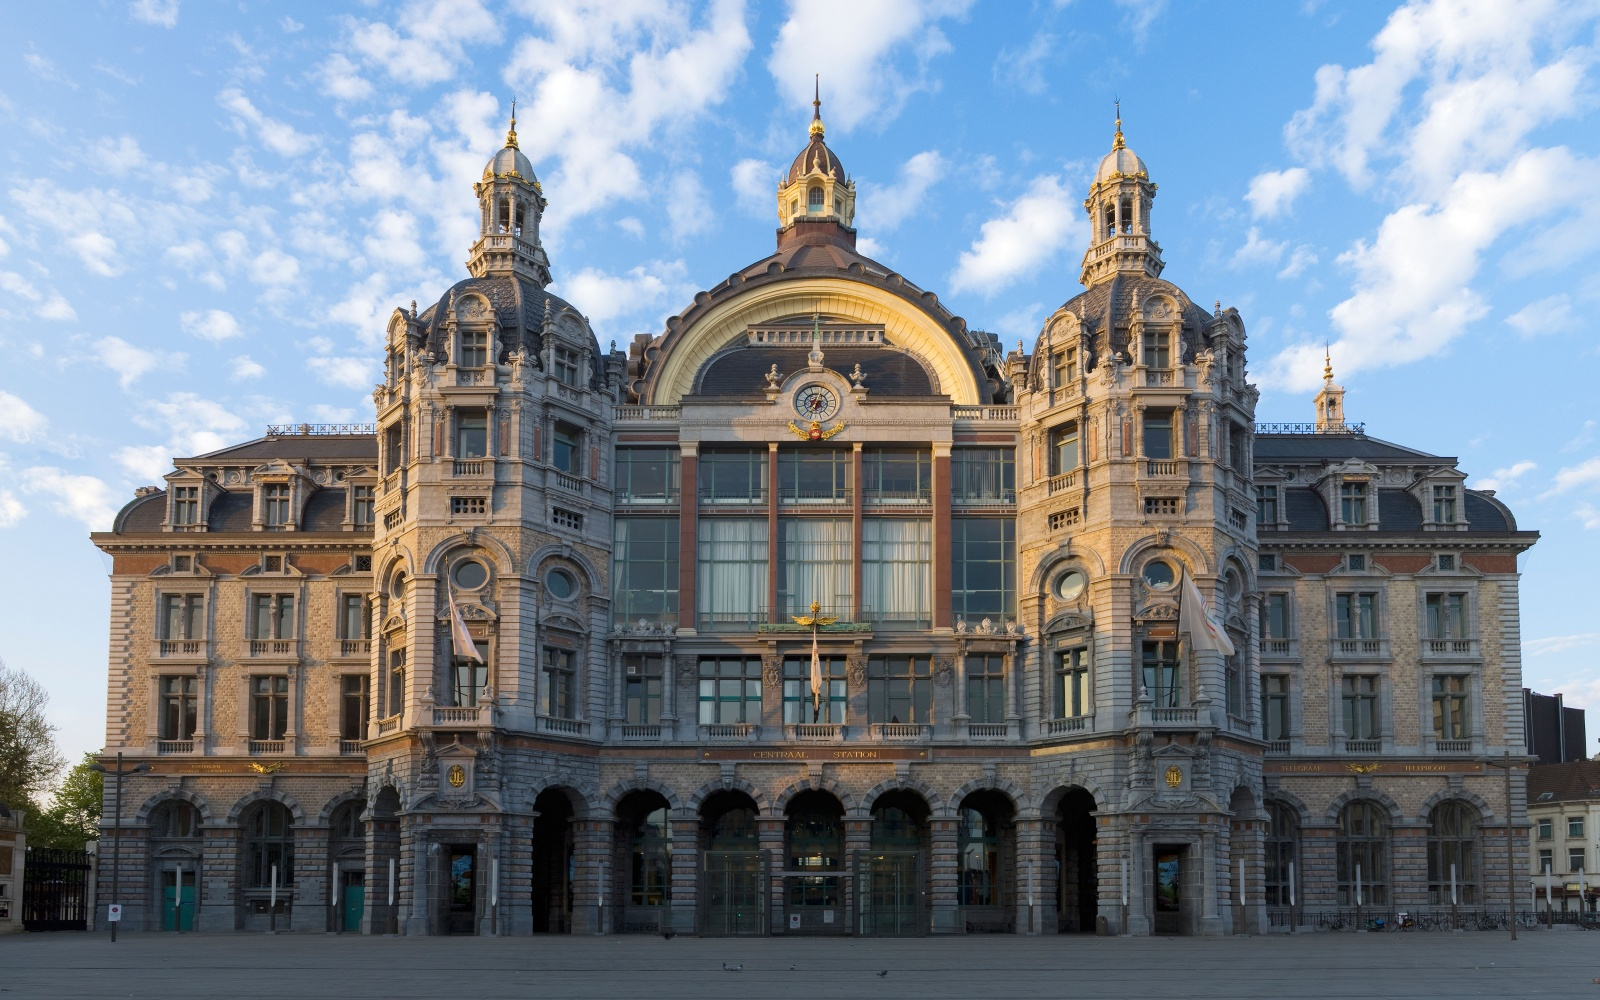 Antwerp Central Station, Belgium